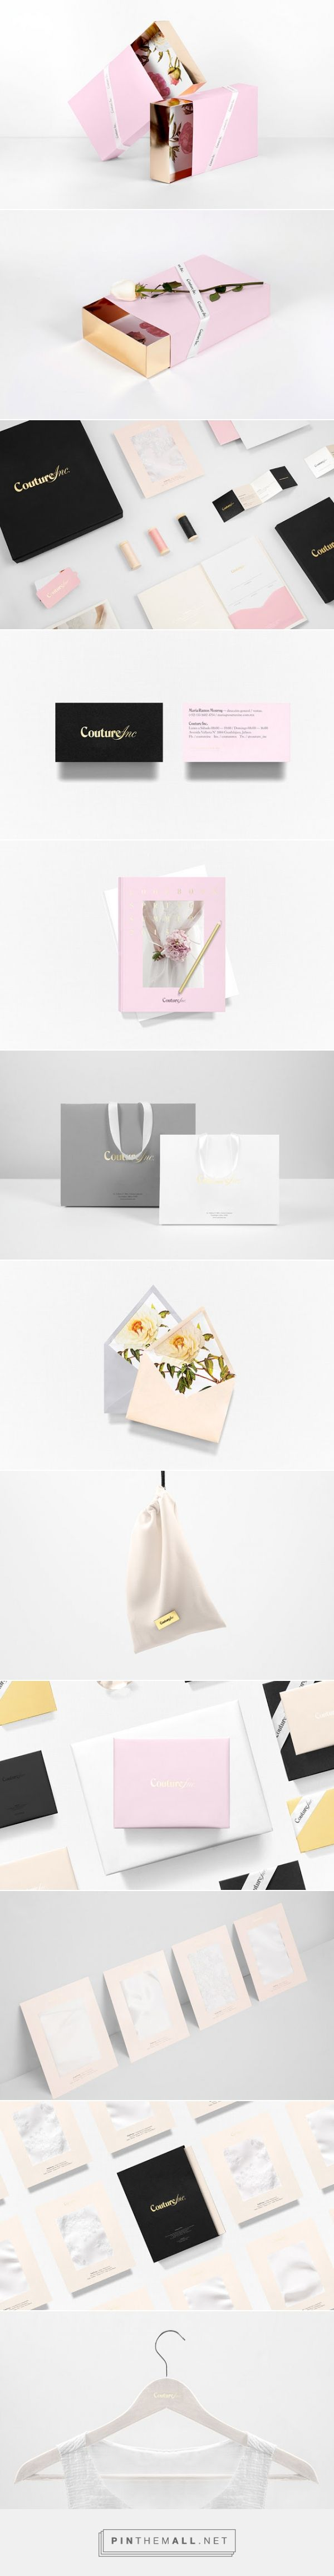 Ampoule laureen luhn design graphique - Couture Inc Packaging By Anagrama Http Www Packagingoftheworld